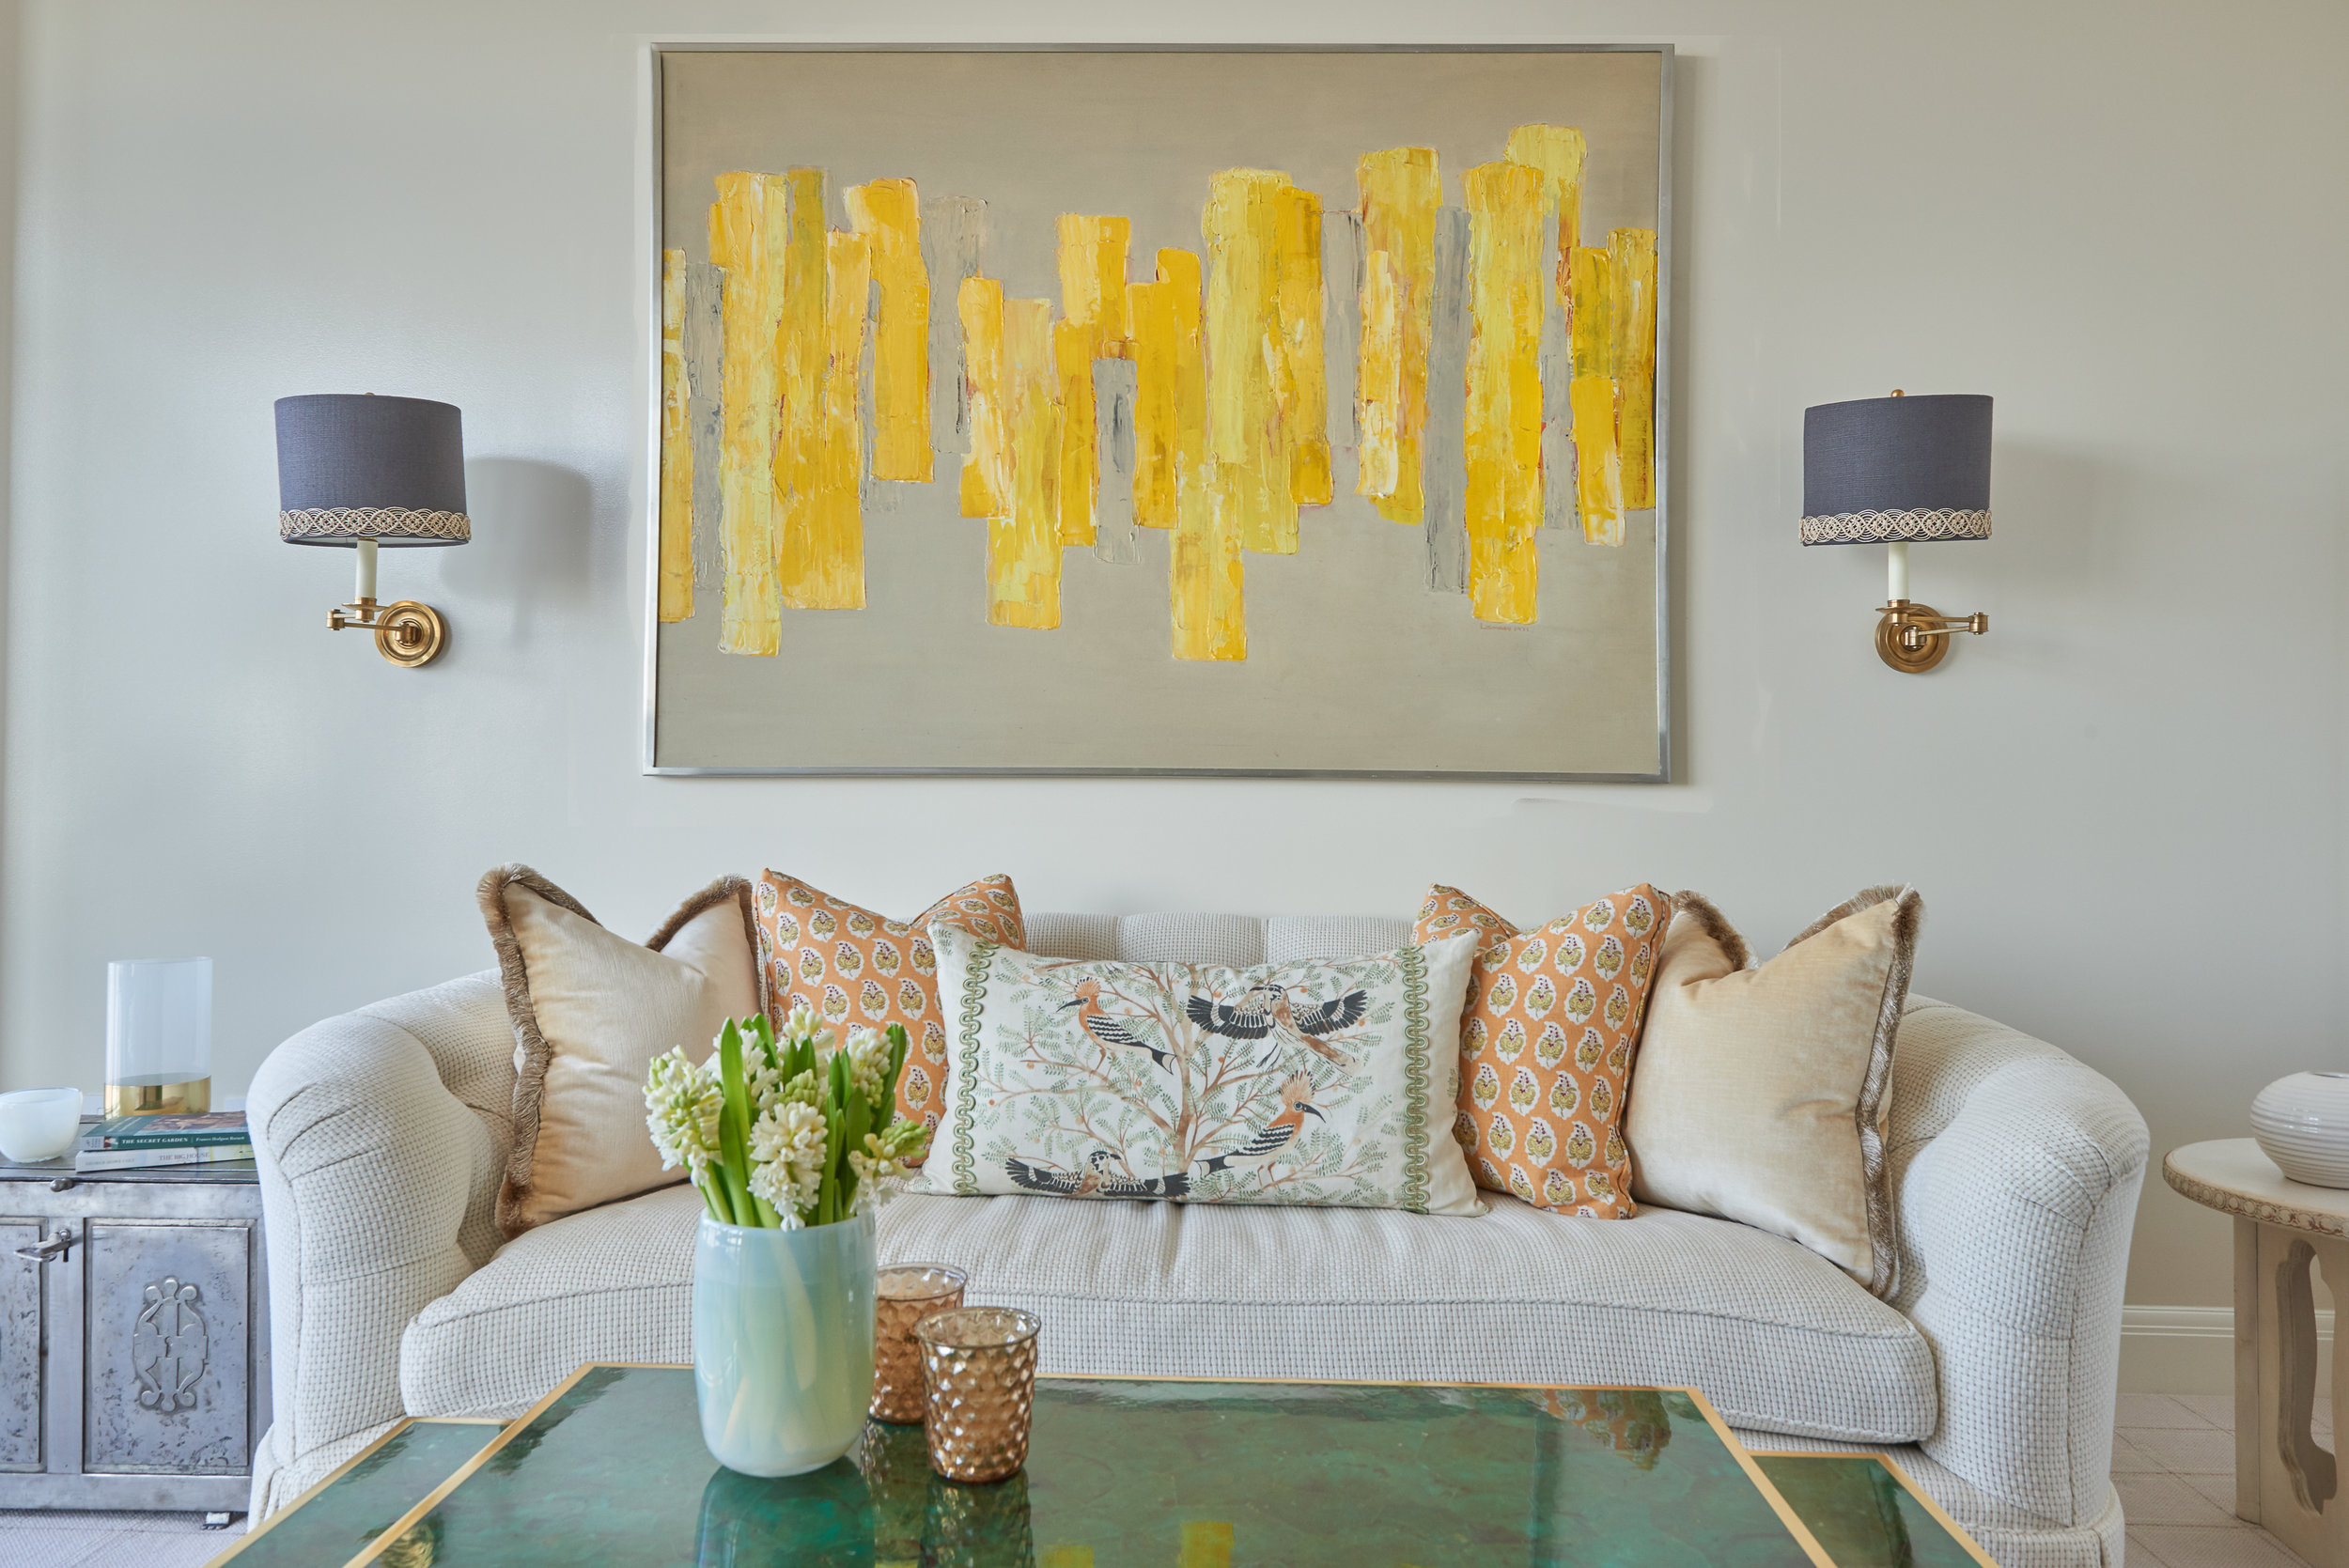 Lyon-Field-Interior-design--sofa-fabrics-nyc-©Jane Beiles-0512.jpg